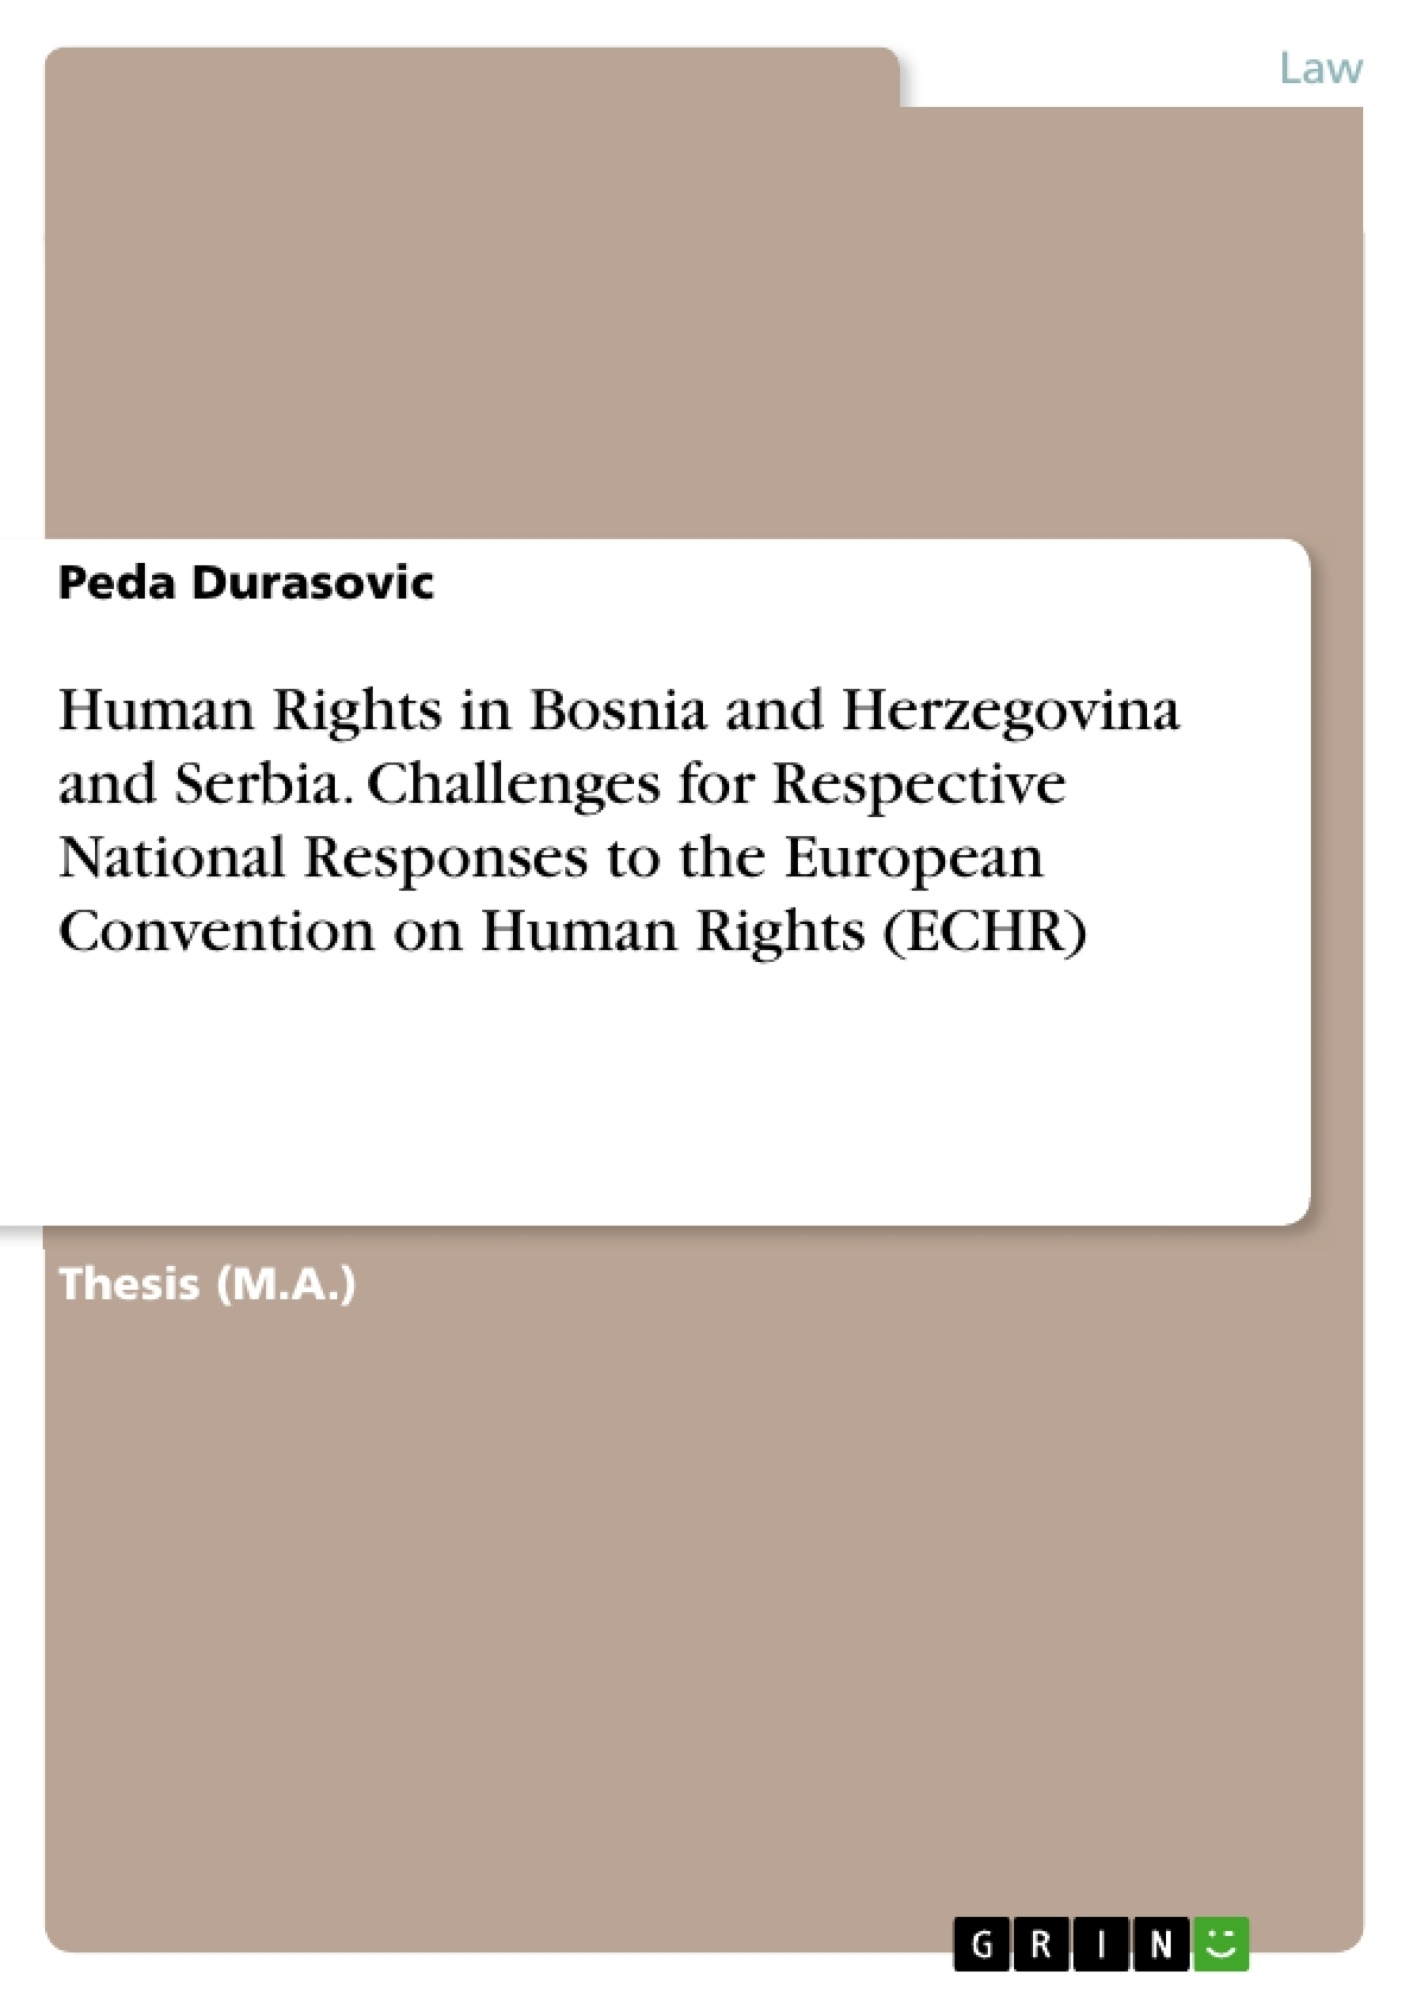 Title: Human Rights in Bosnia and Herzegovina and Serbia. Challenges for Respective National Responses to the European Convention on Human Rights (ECHR)